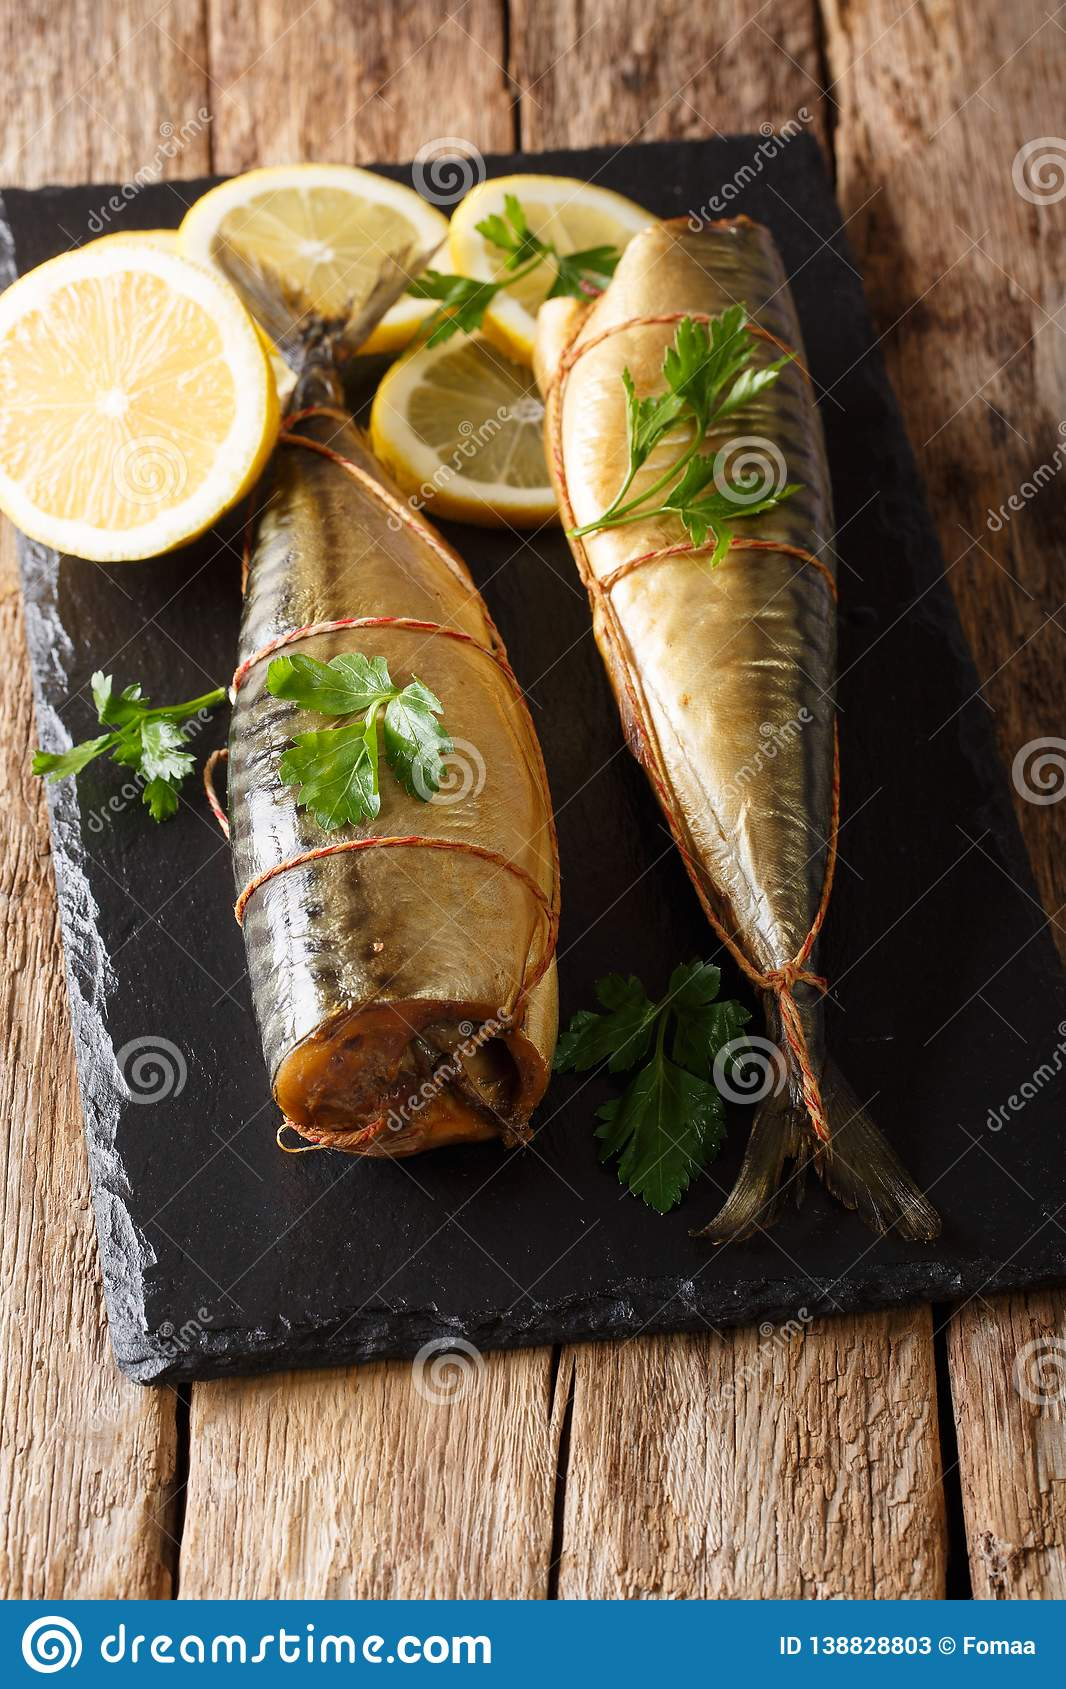 Smoked mackerel snack food served with lemons and parsley closeup on a black stone board. vertical